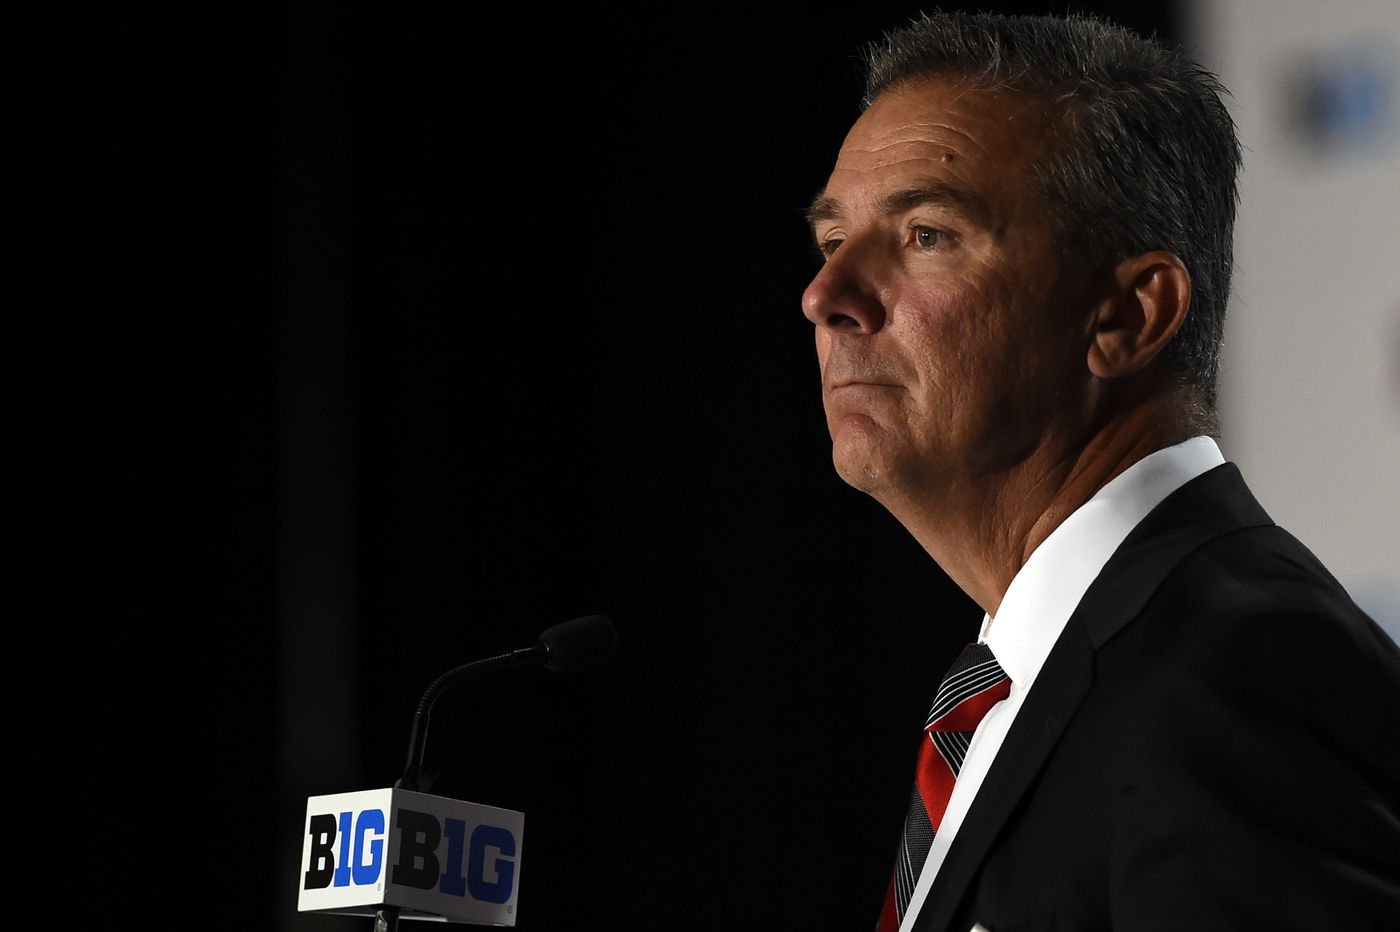 Ohio State coach Urban Meyer put on administrative leave after abuse allegations